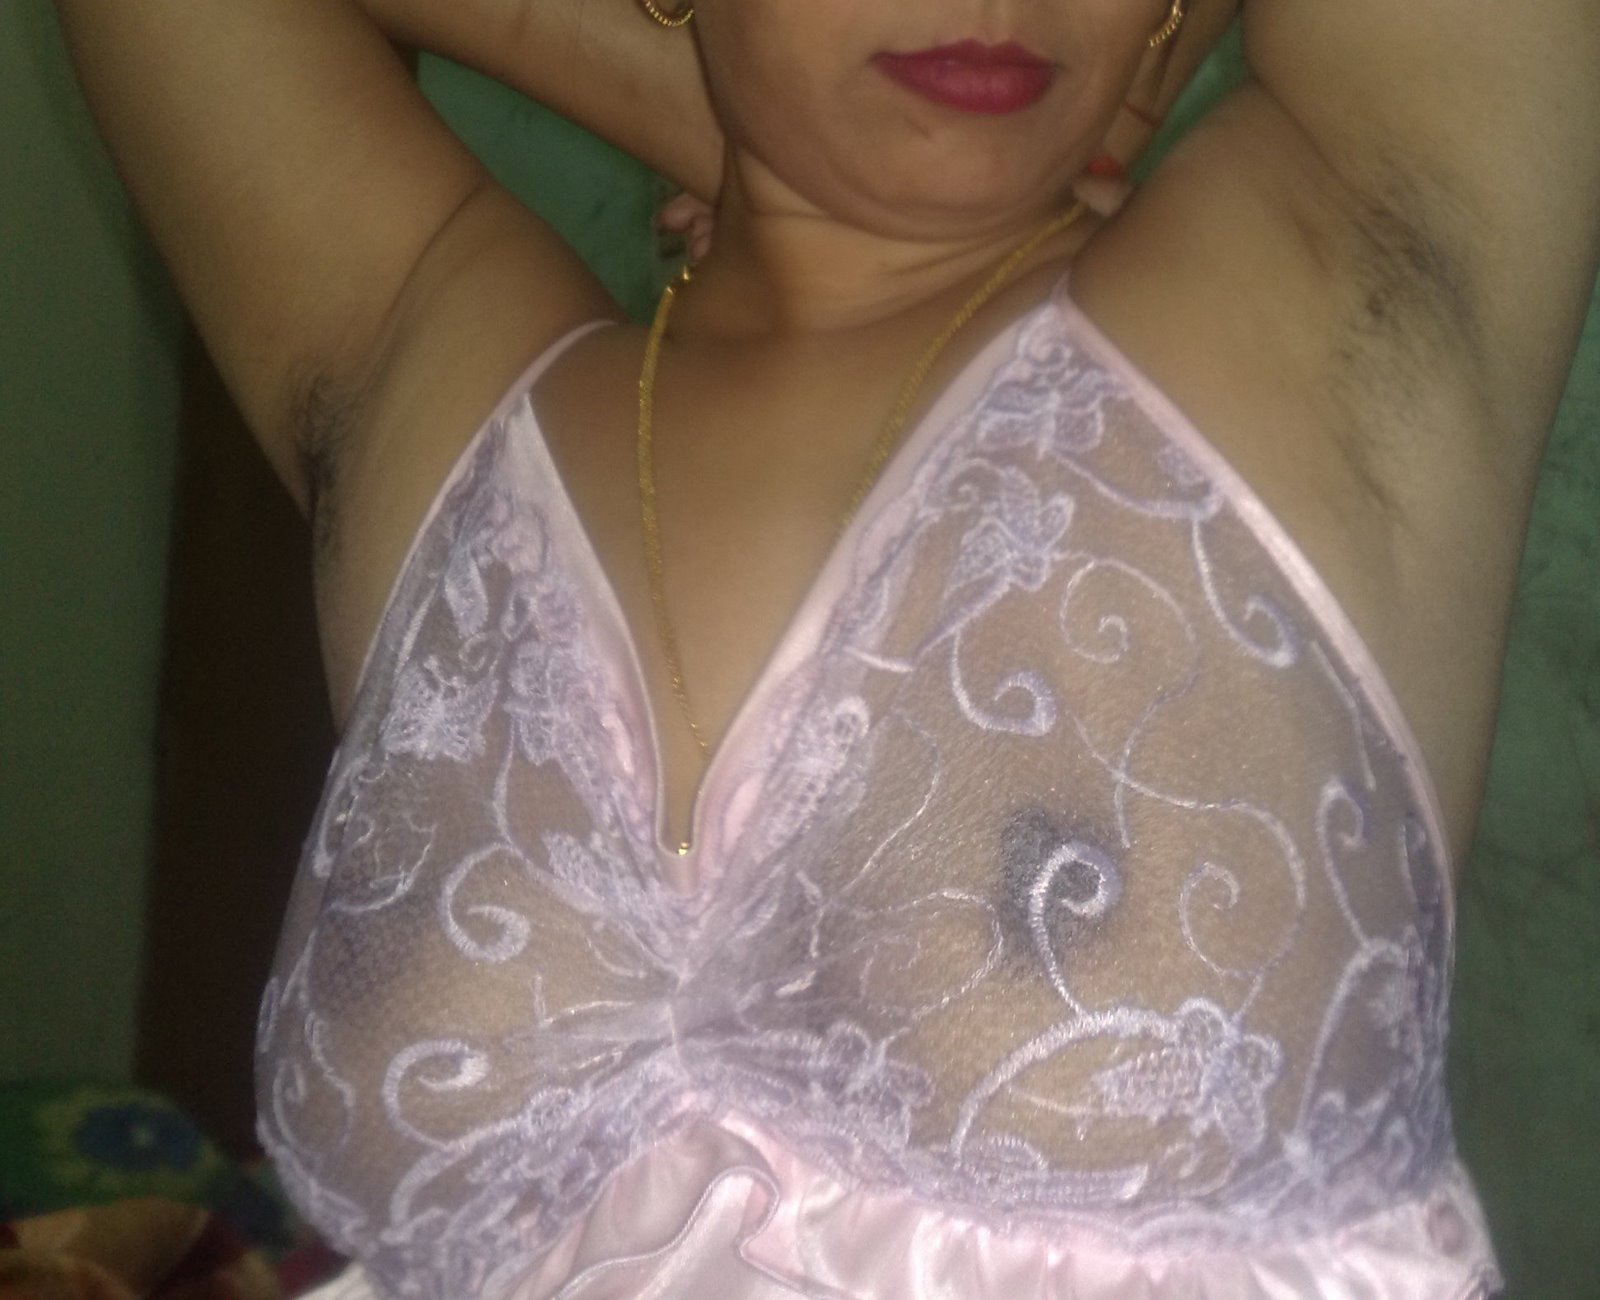 Horny Indian Milf Aunty Showing Hot Ass N Boobs Giving -4440